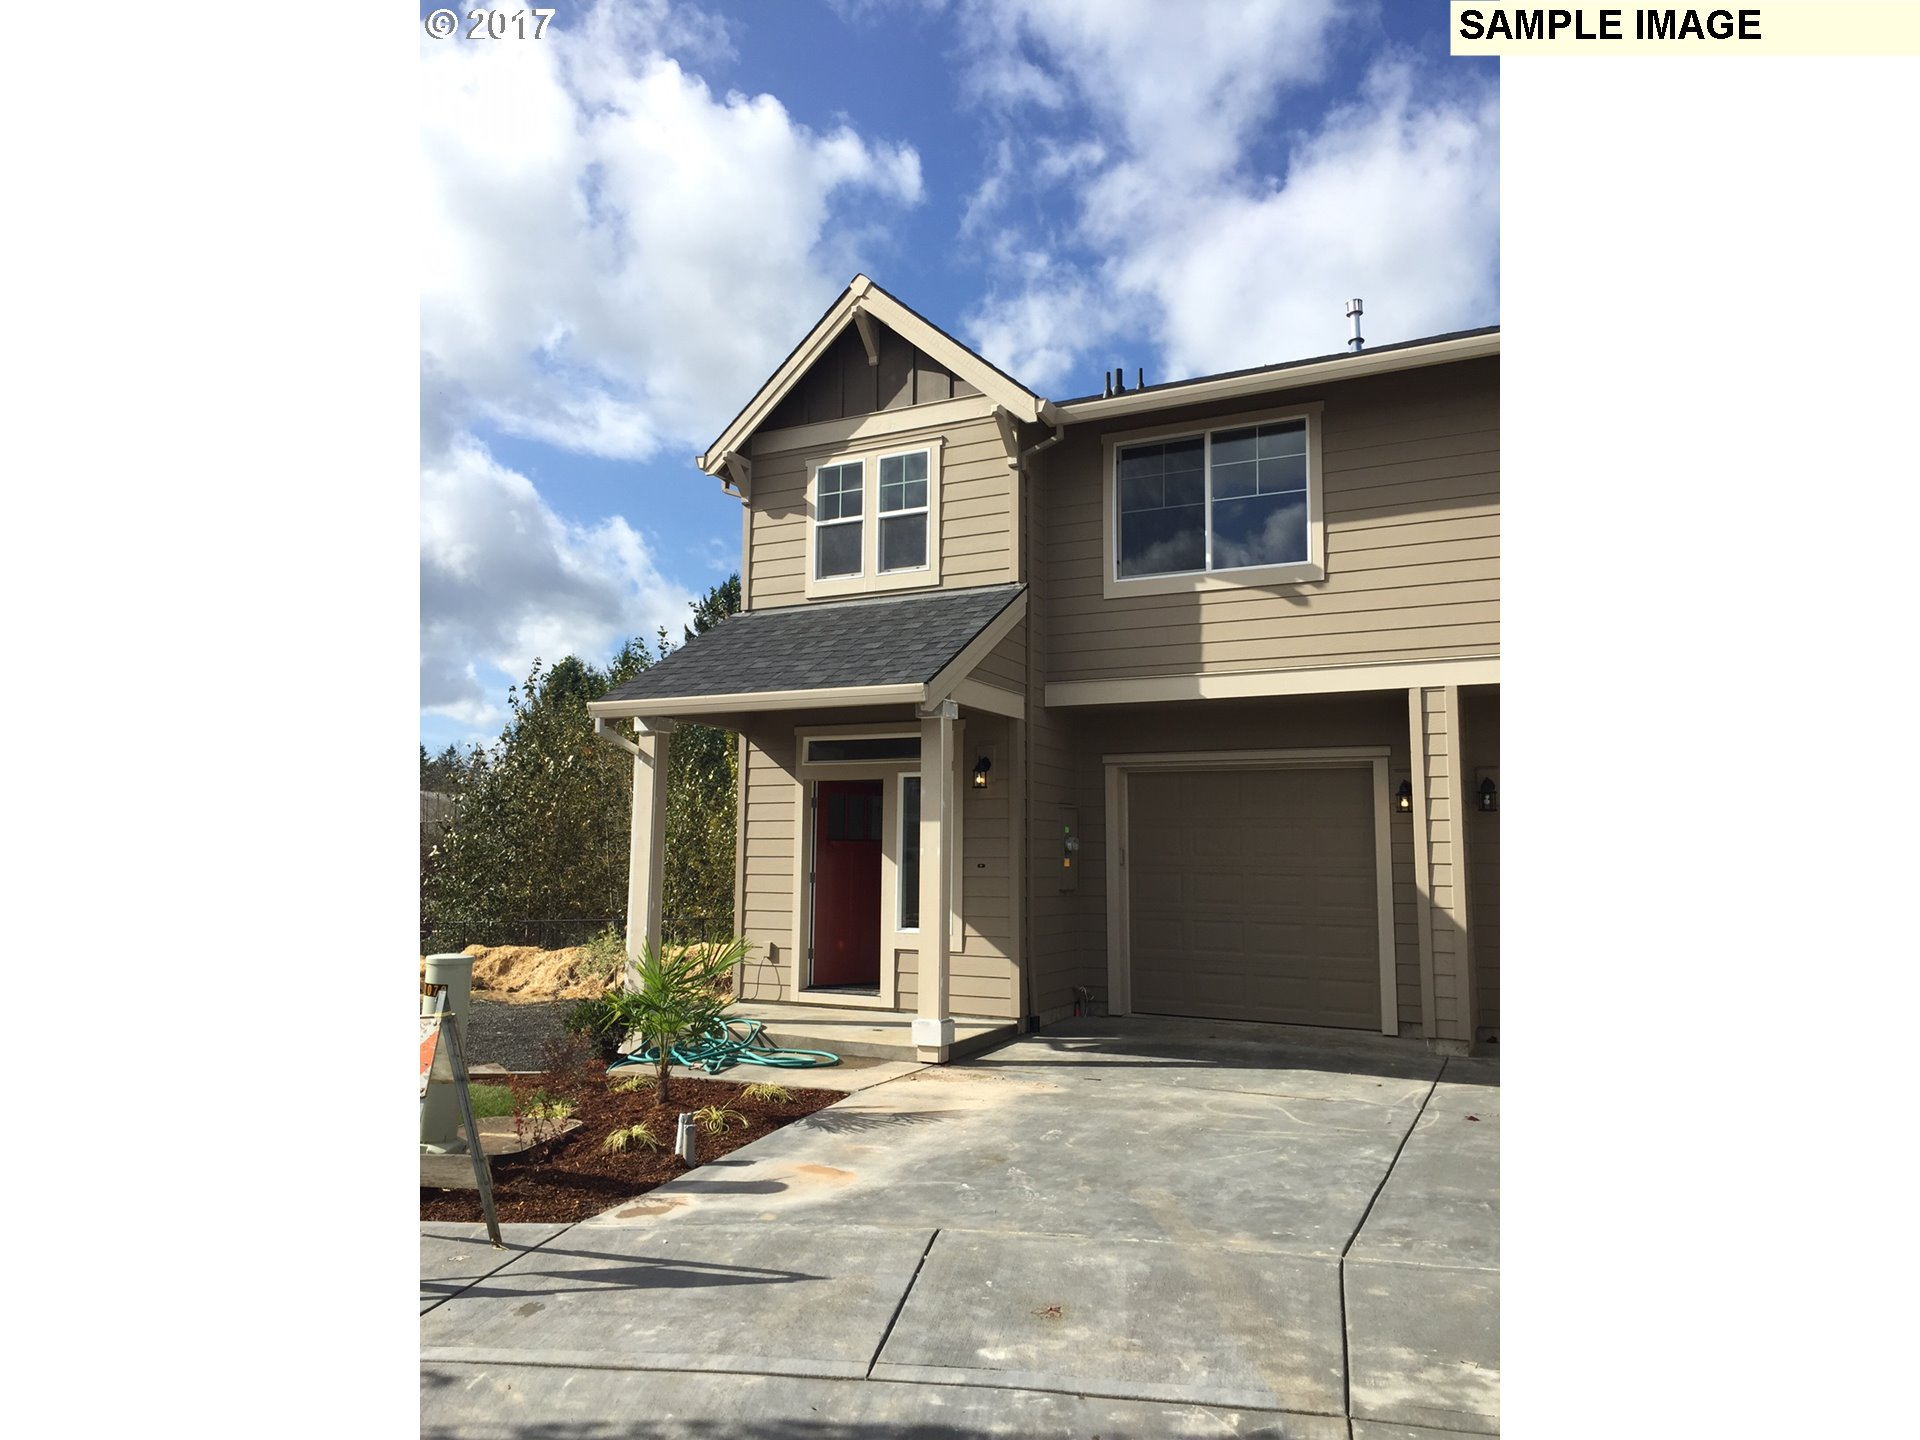 1736 sq. ft 3 bedrooms 2 bathrooms  House For Sale, Sandy, OR